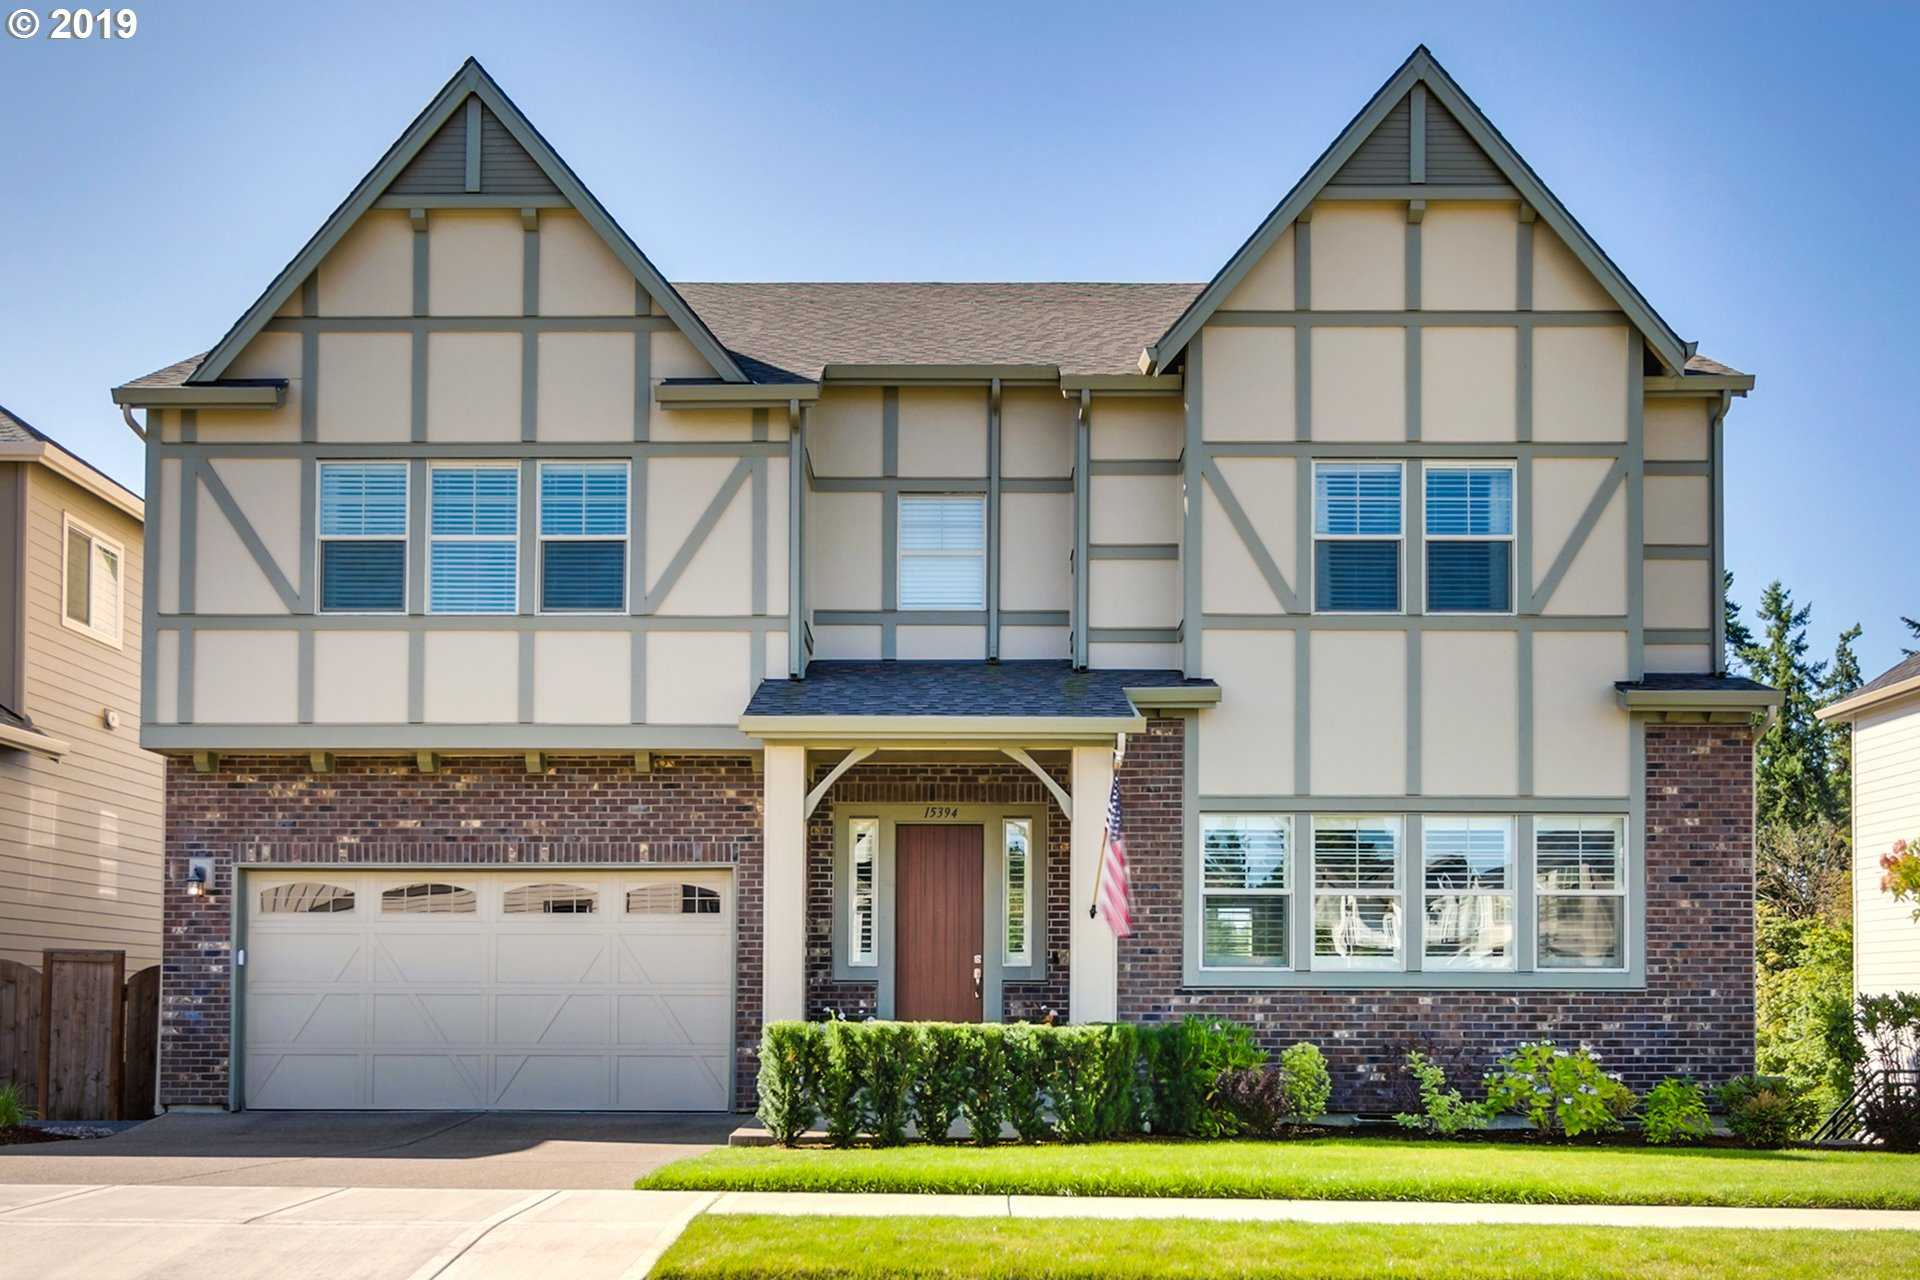 $849,900 - 4Br/4Ba -  for Sale in Bull Mountain, Tigard